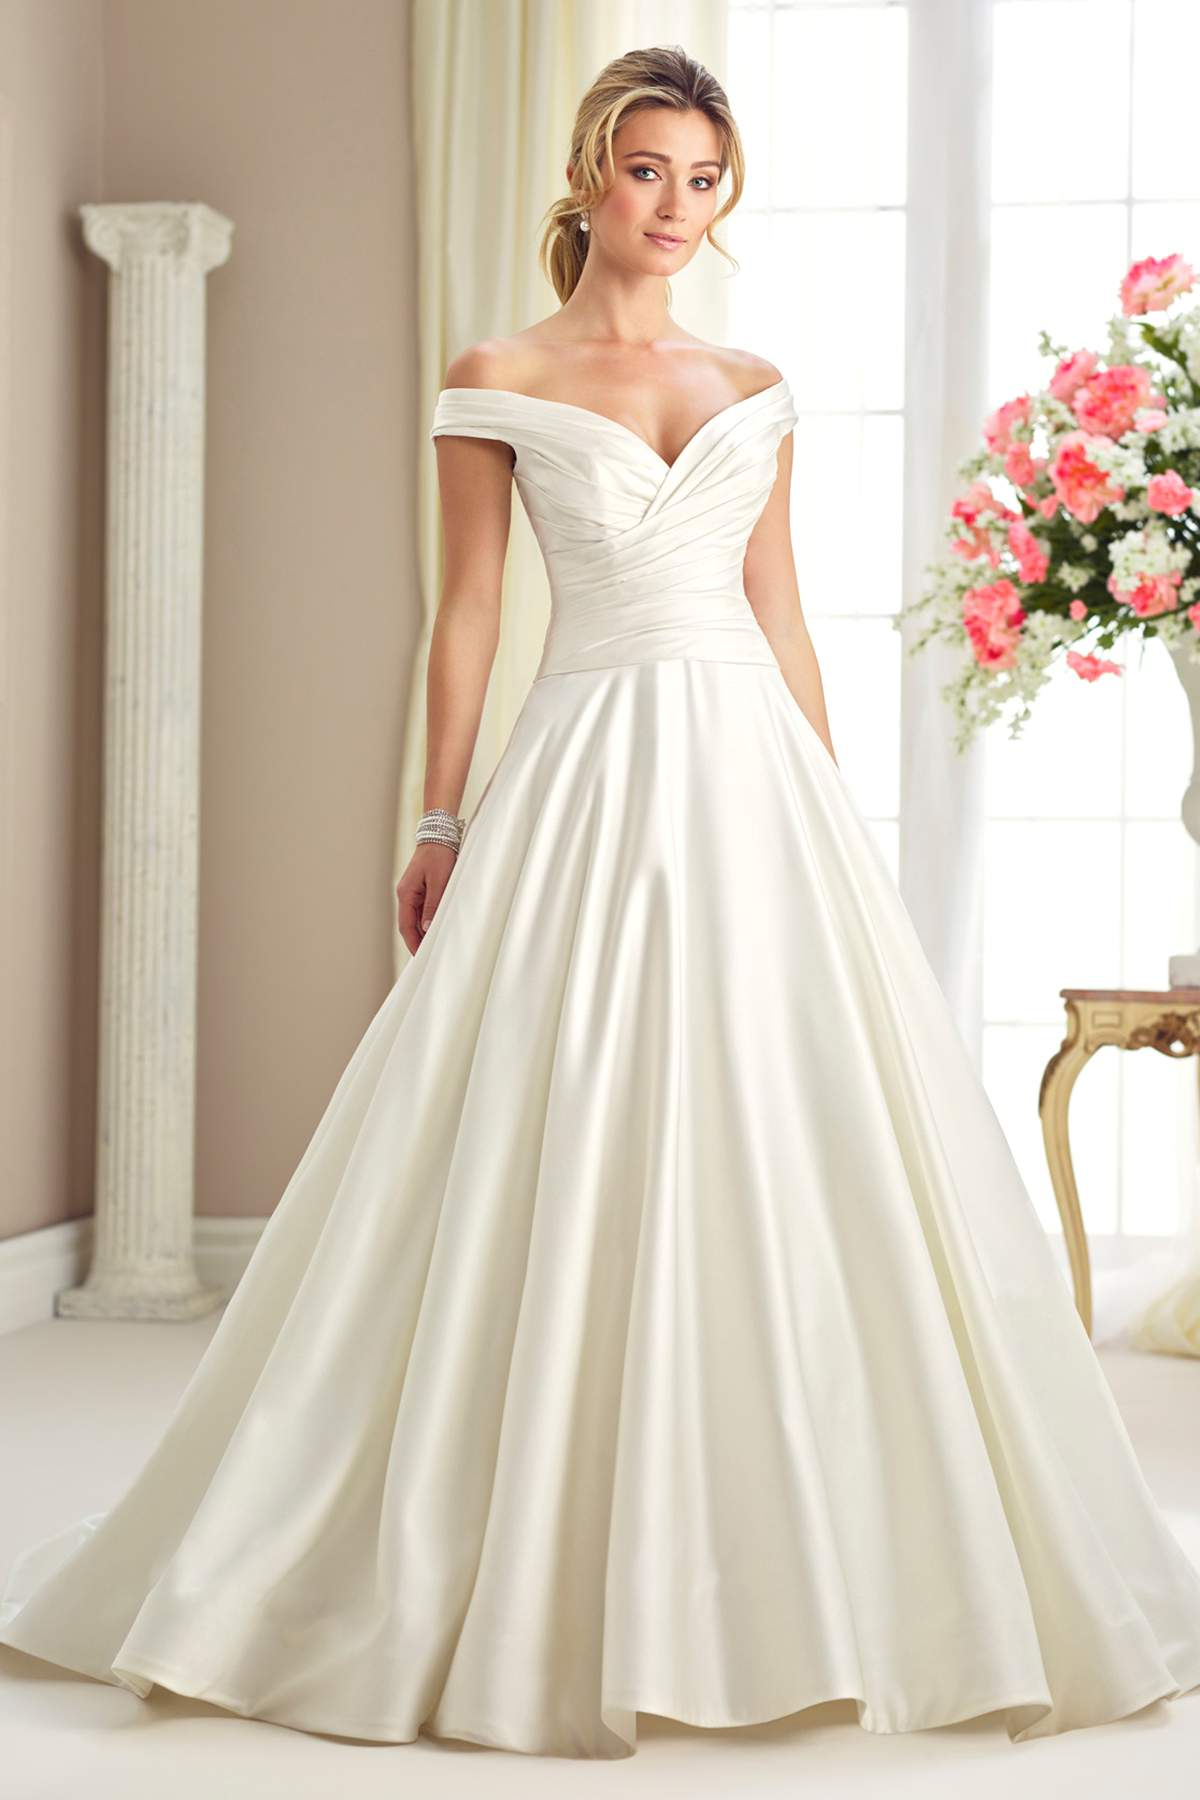 Style 217119 By Enchanting By Mon Cheri